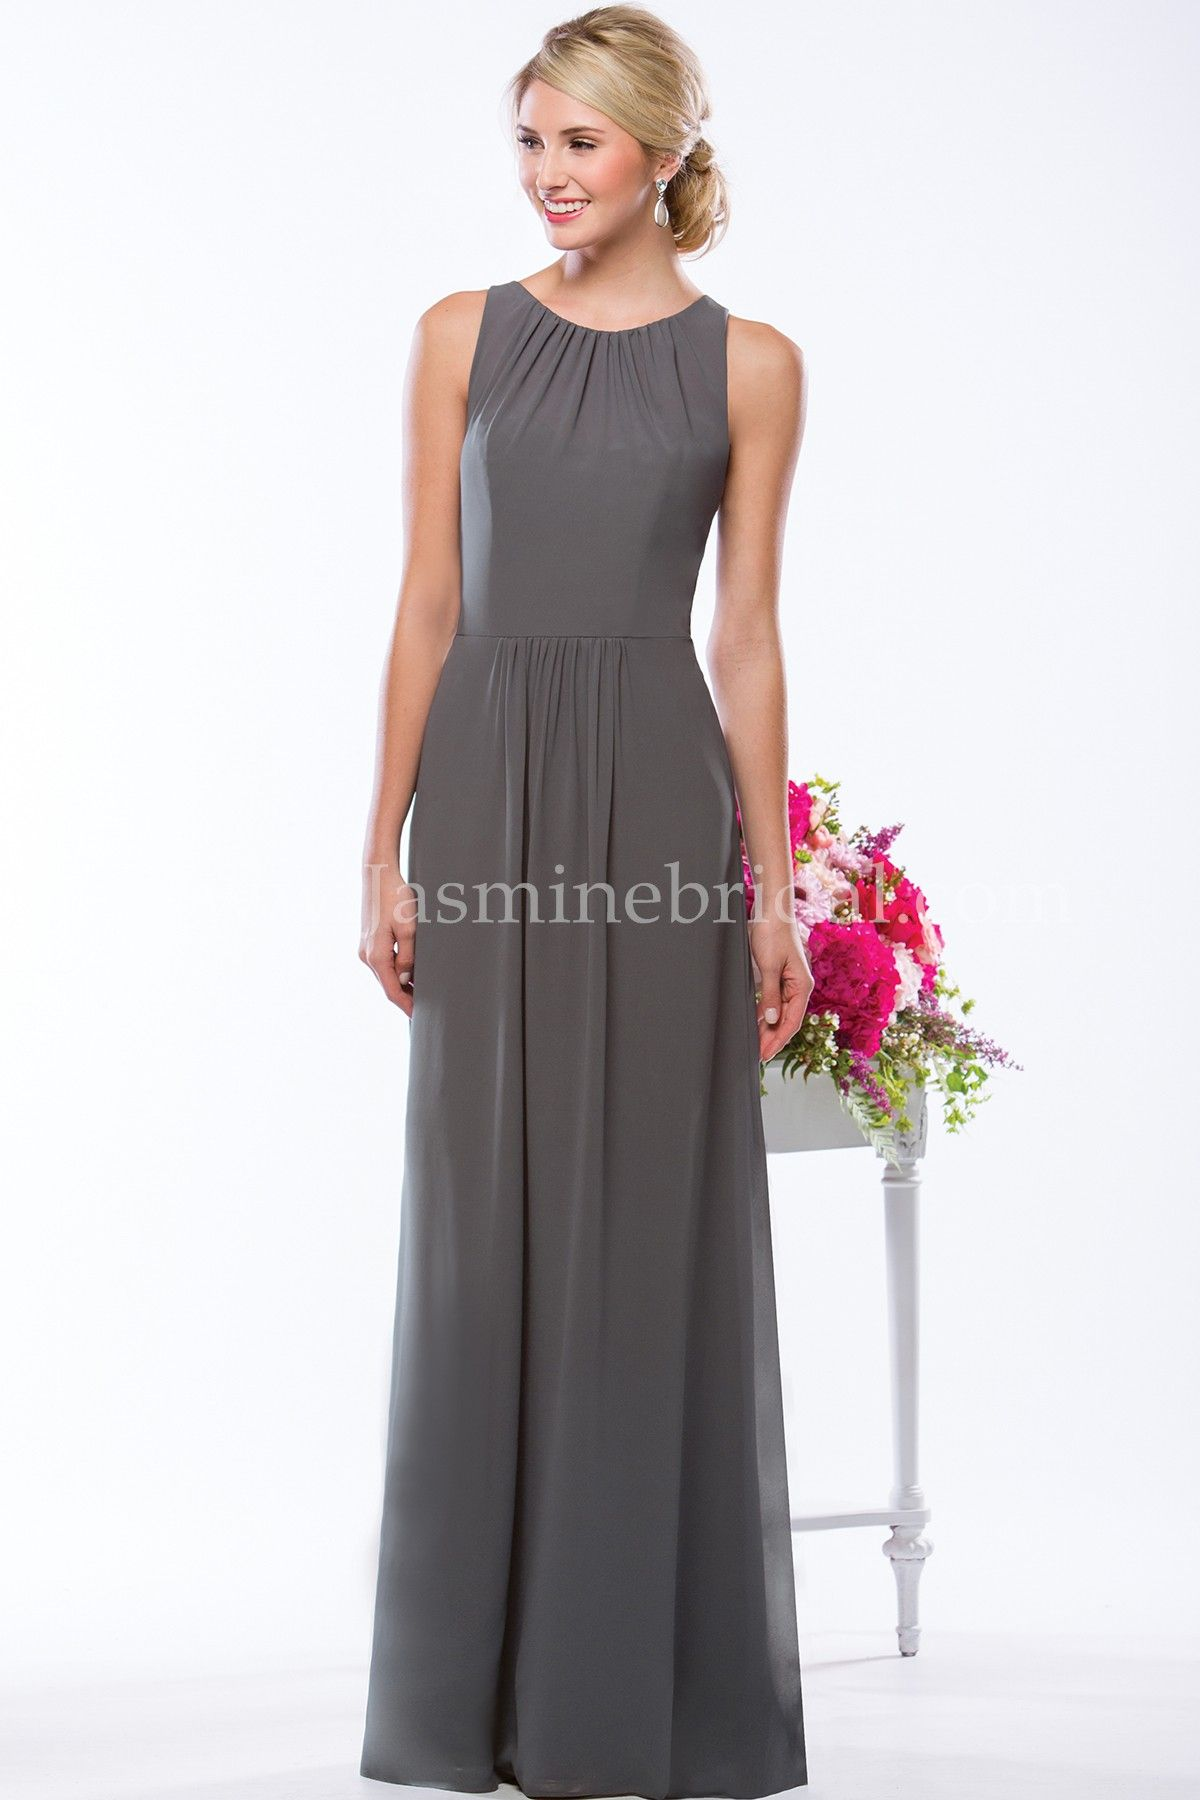 Jasmine bridal bridesmaid dress jasmine bridesmaids style p176052 jasmine bridal bridesmaid dress jasmine bridesmaids style p176052 in iron chic and stylish ombrellifo Images